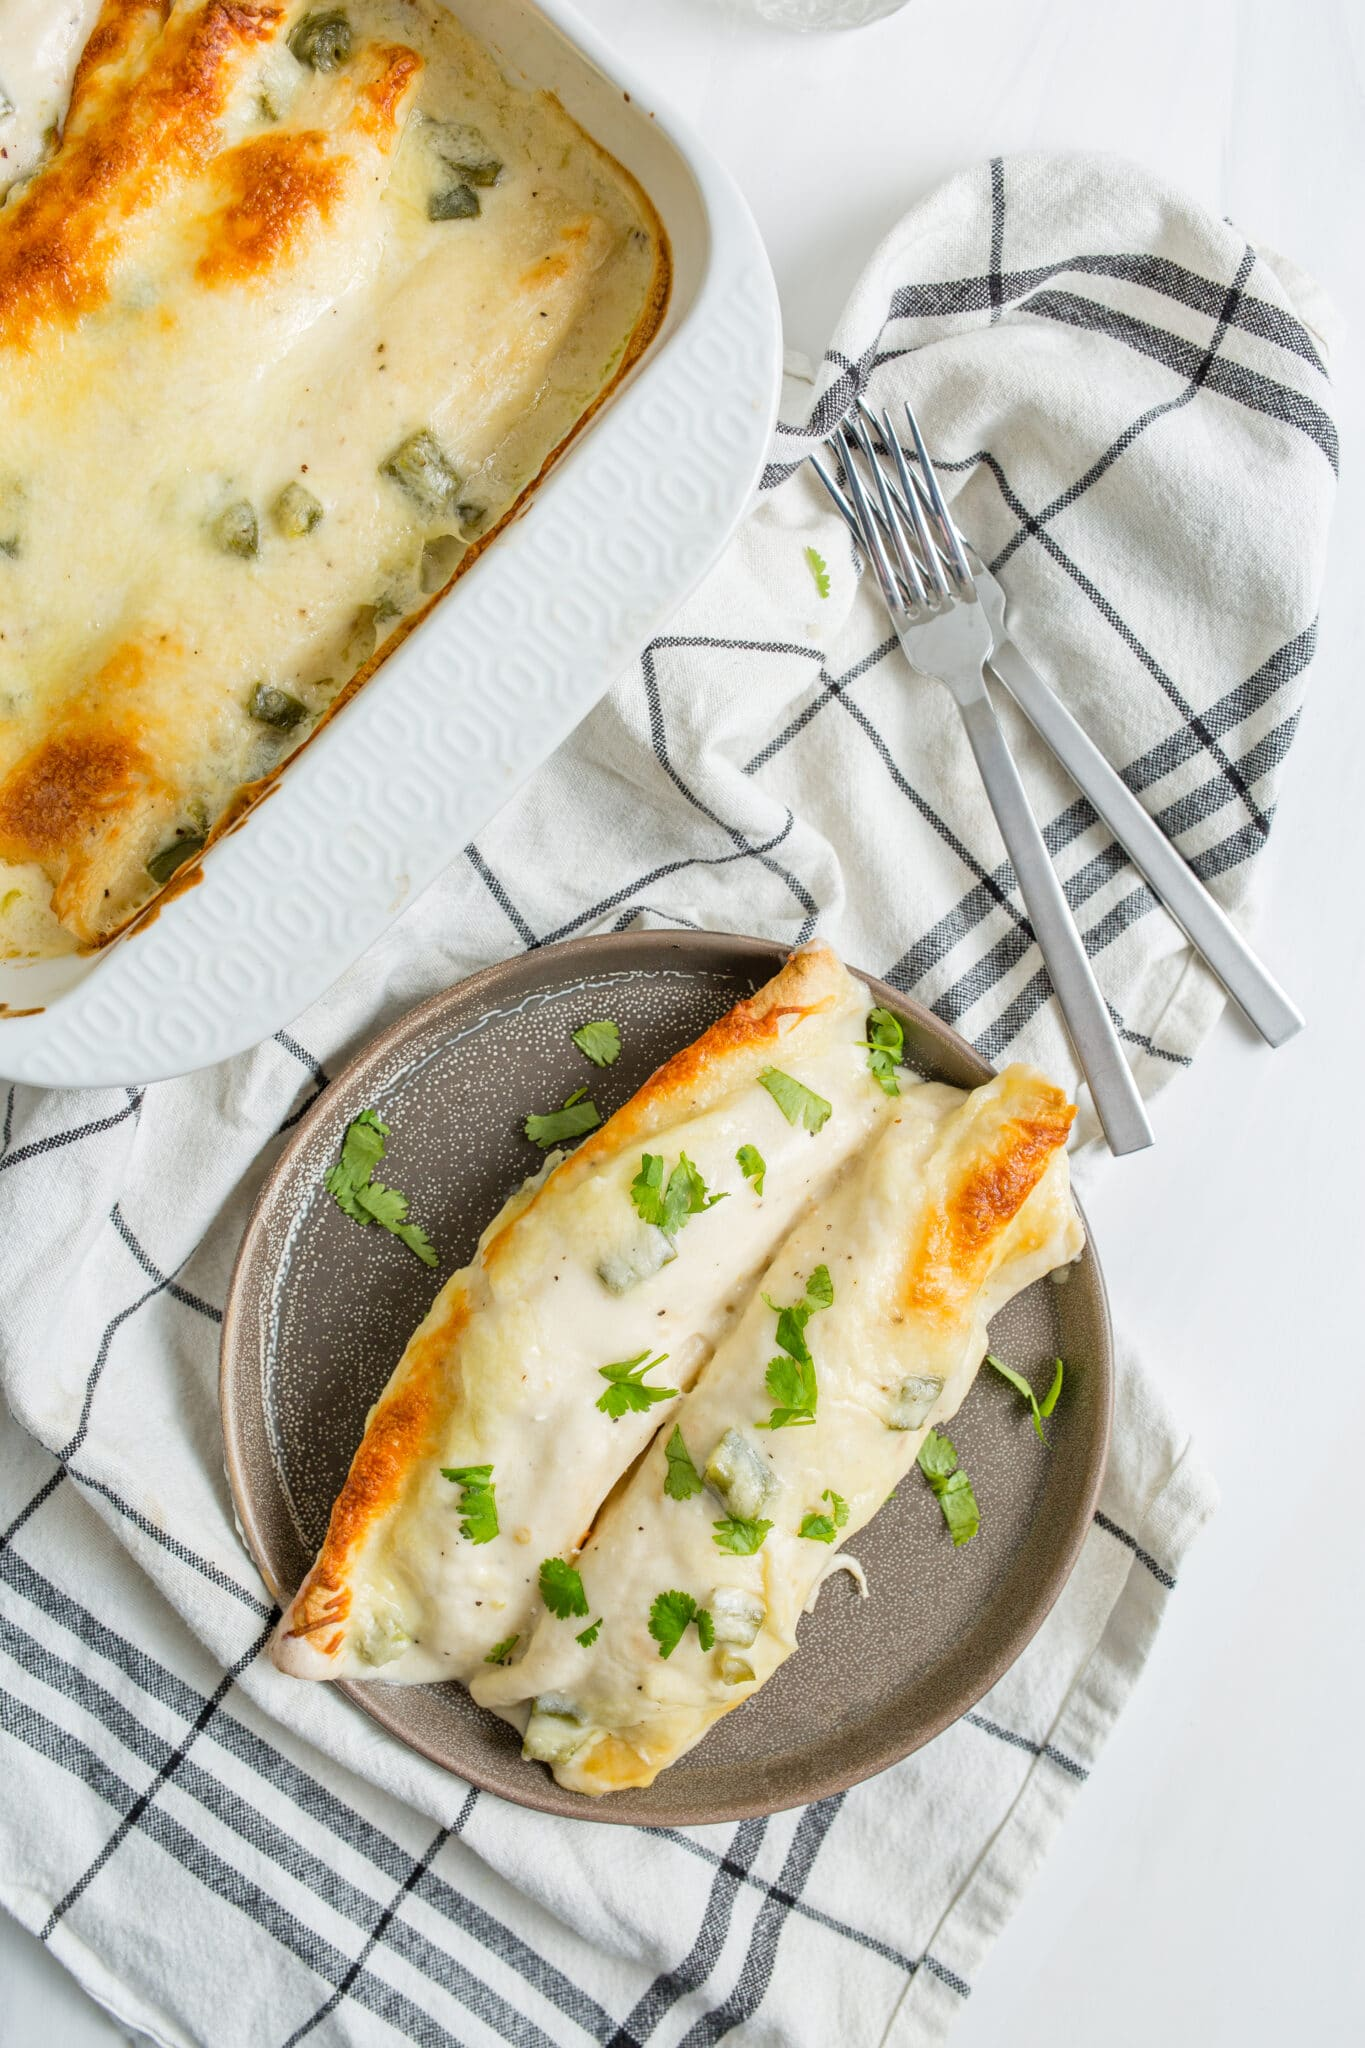 Top shot of white chicken enchiladas in baking dish and on plate next to two forks.